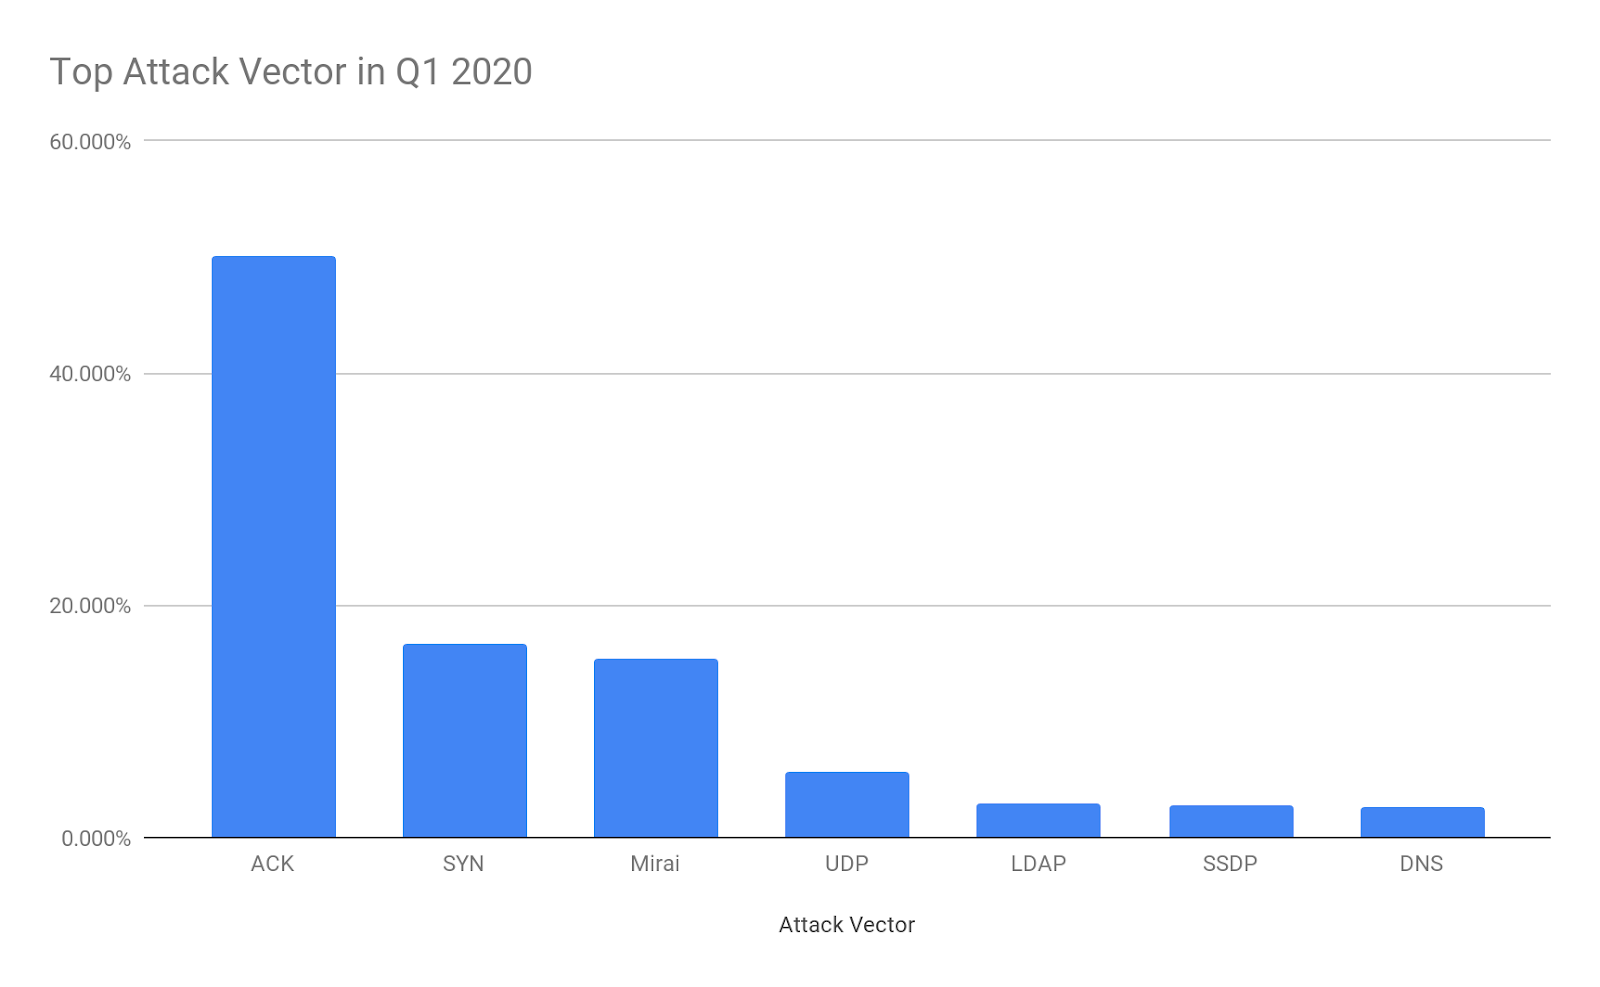 Network-Layer DDoS Attack Trends for Q1 2020